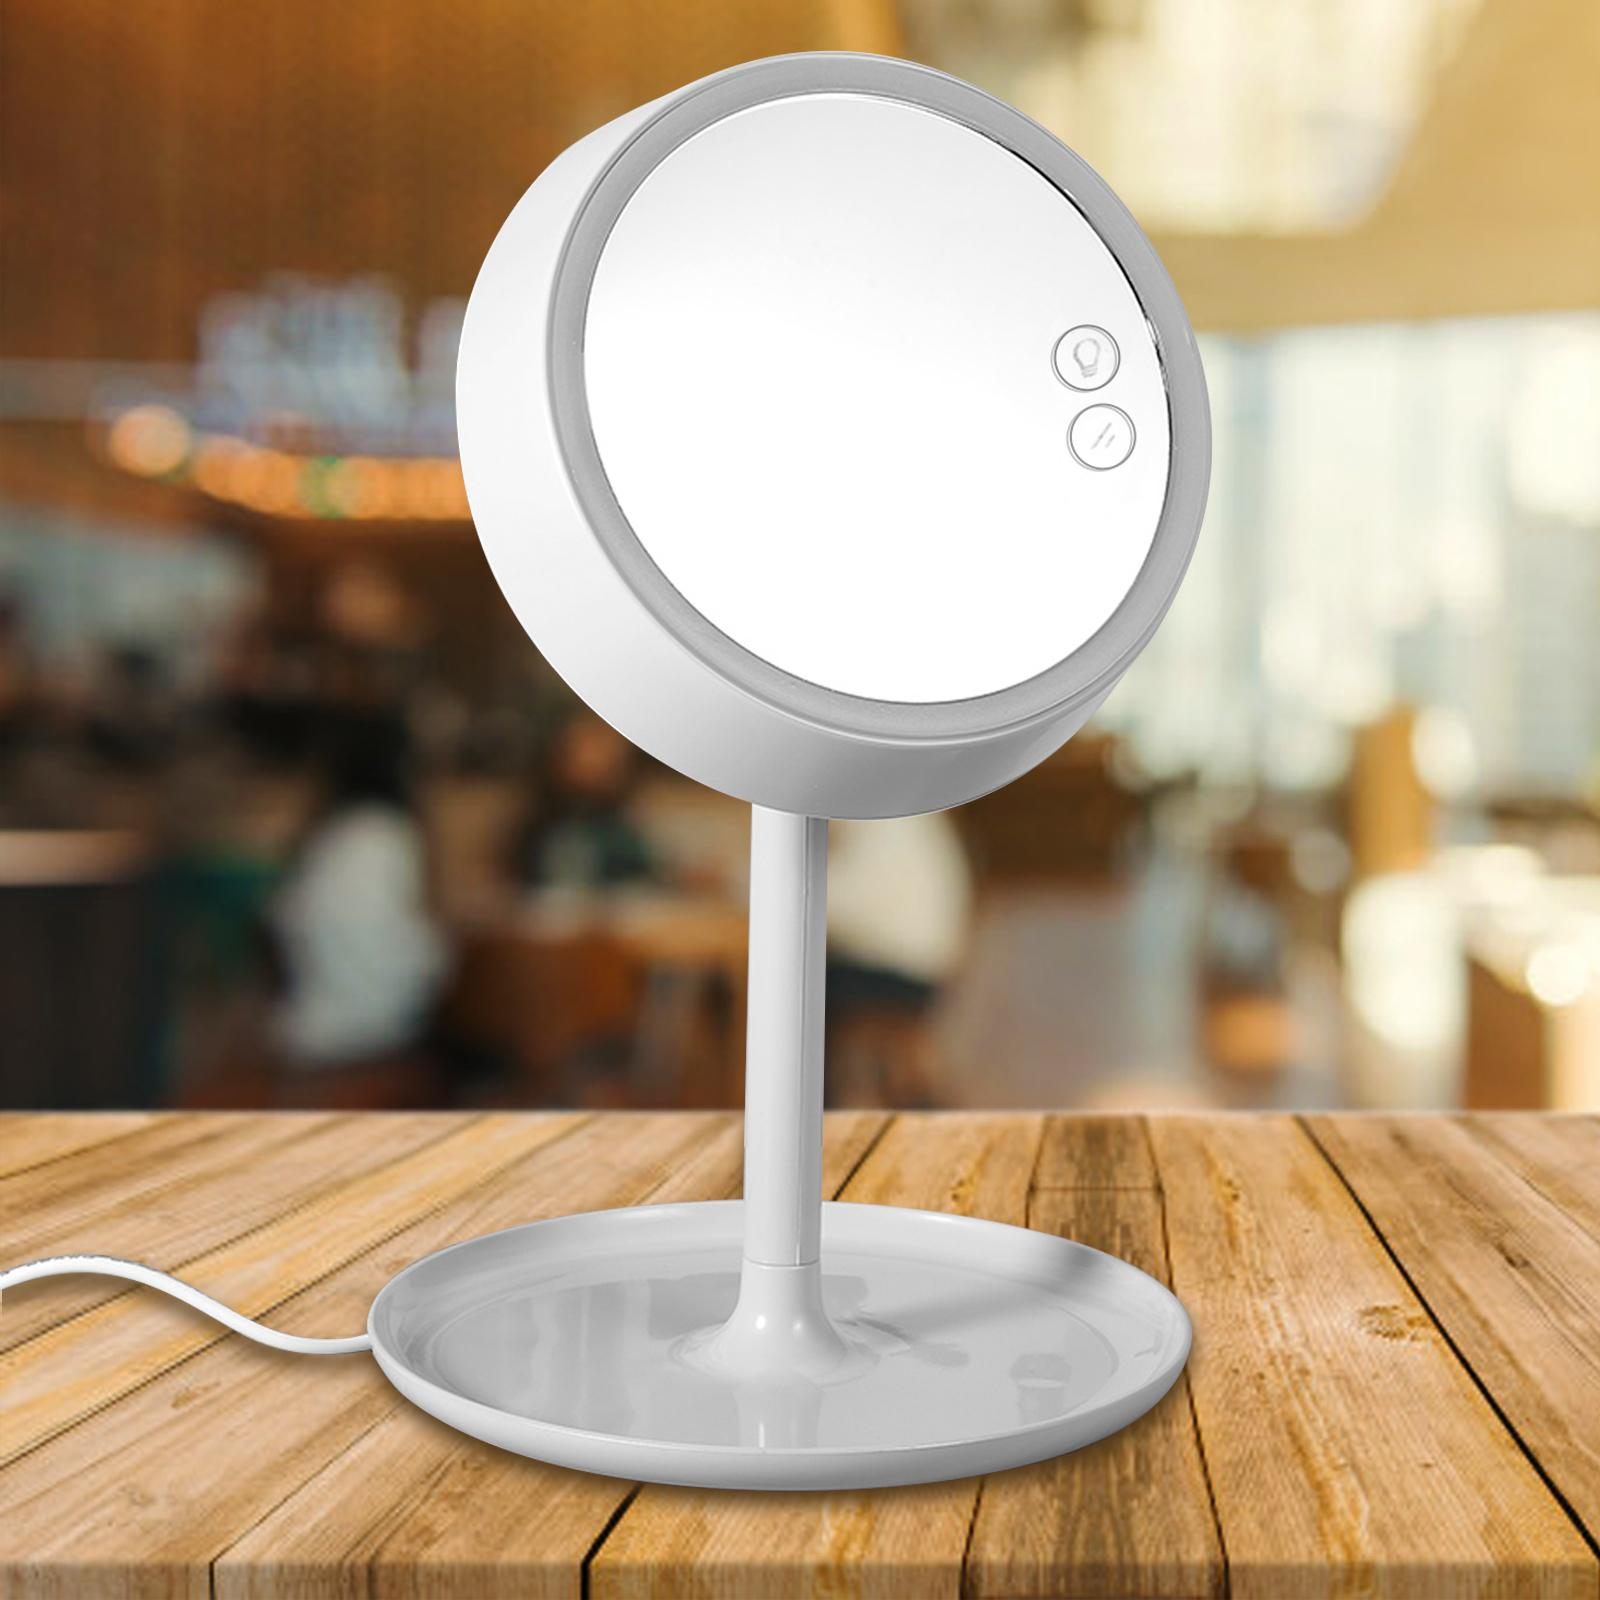 Table Lamp For Sale Lamps Prices Brands Review In Muid Led Cloud Night Philippines